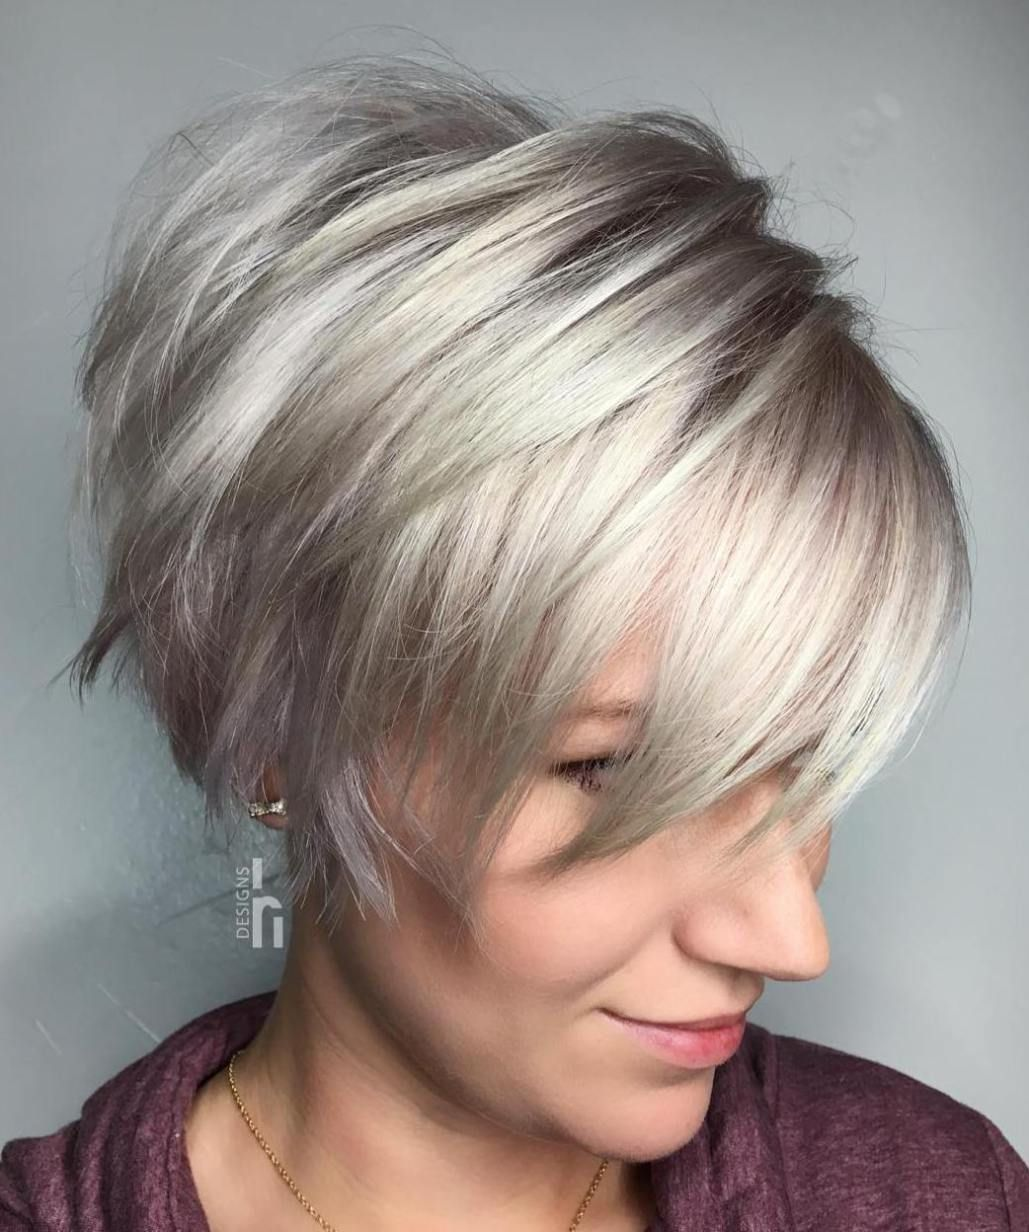 70 Cute and Easy-To-Style Short Layered Hairstyles | Frisur, Kurze ...